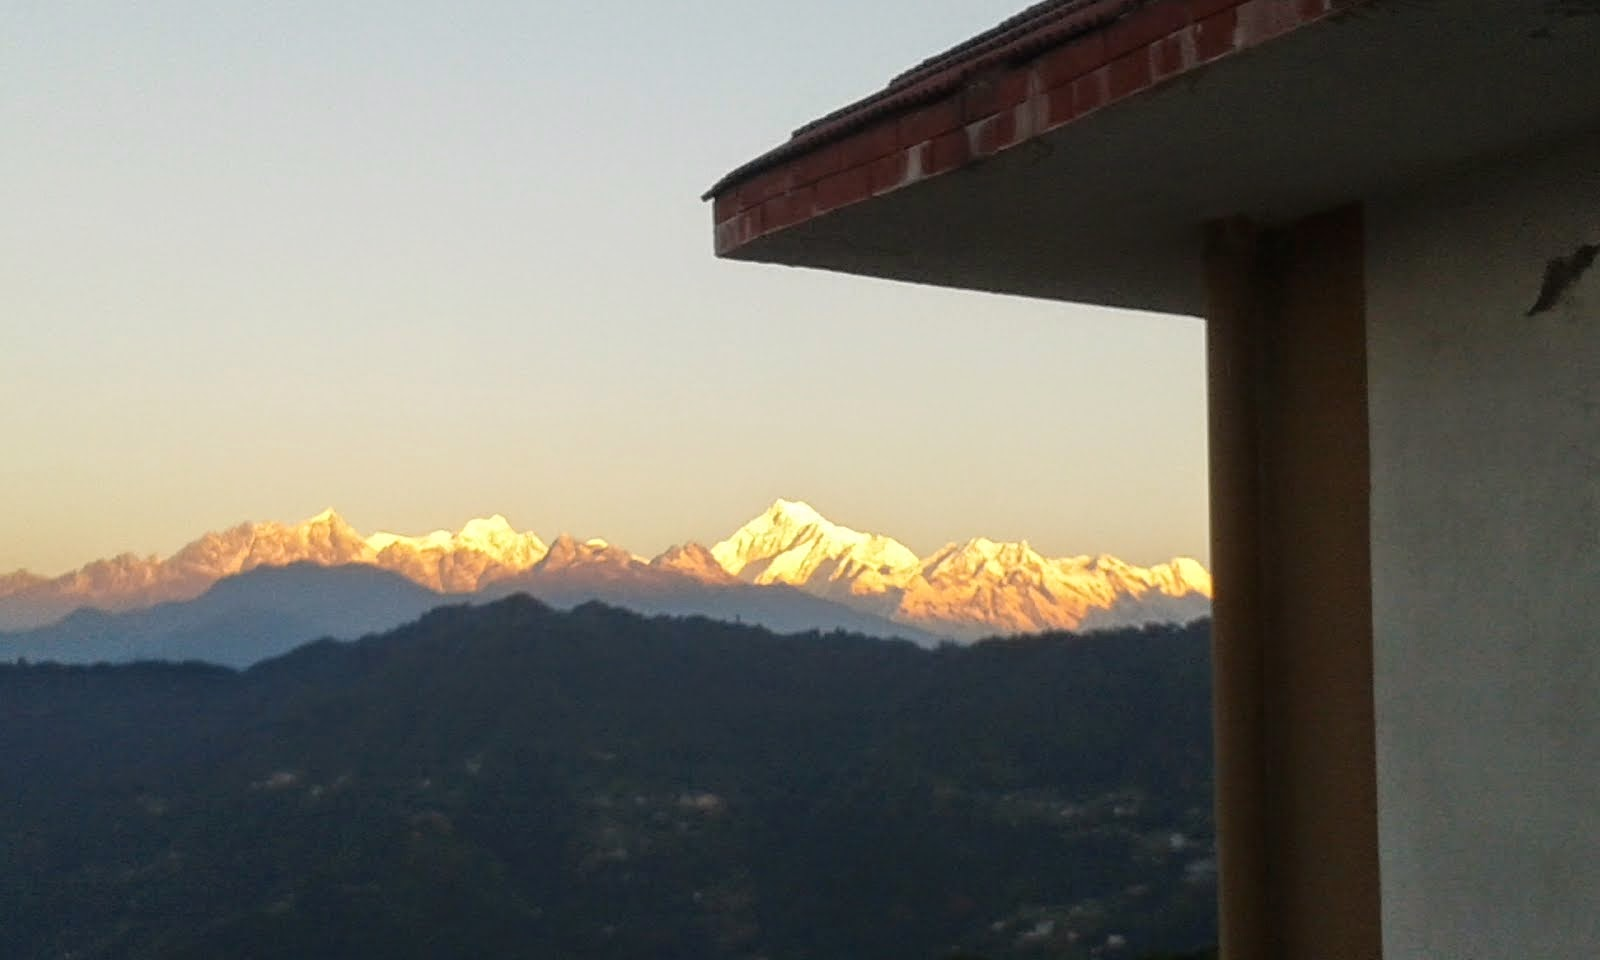 View of Kanchendzonga always inspires